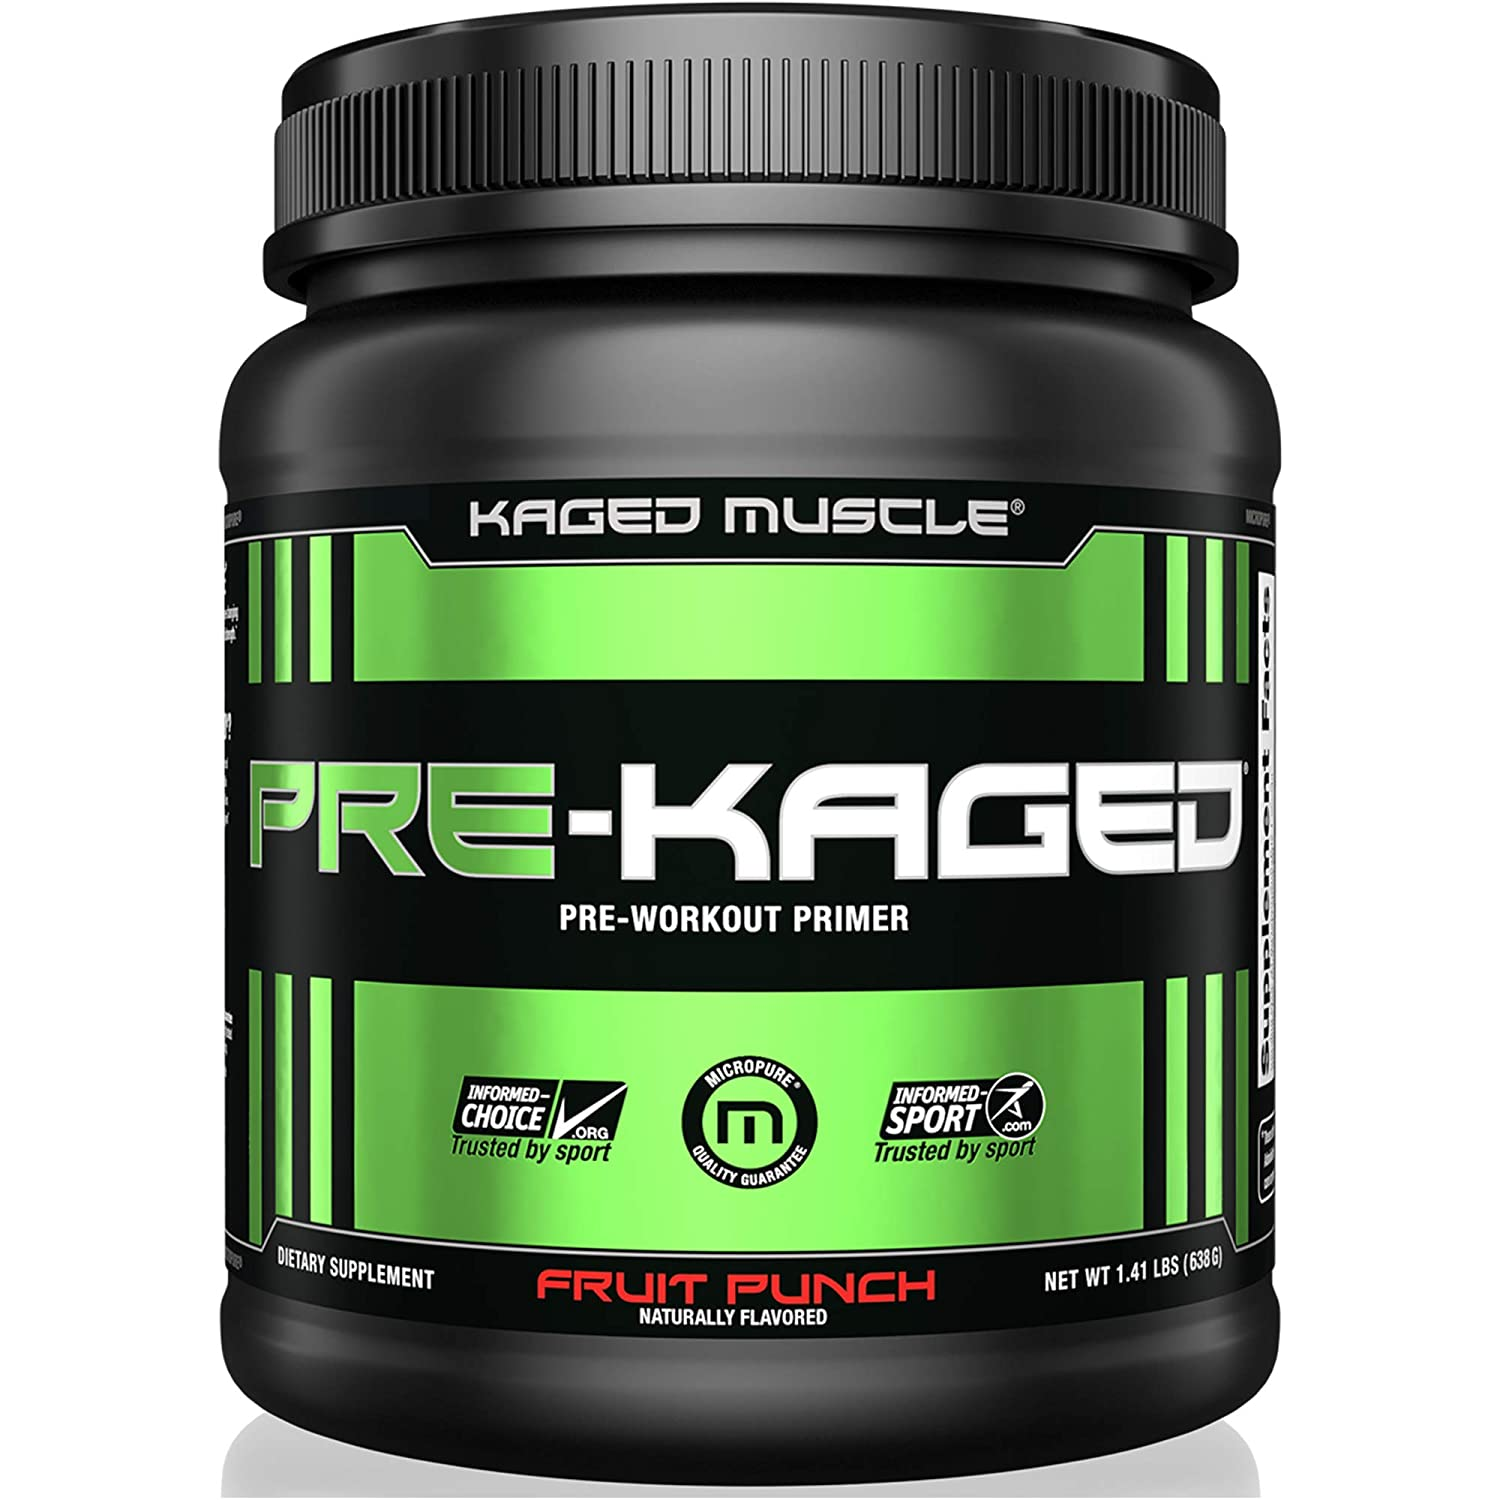 Kaged Muscle Pre-Kaged Pre-Workout Powder review